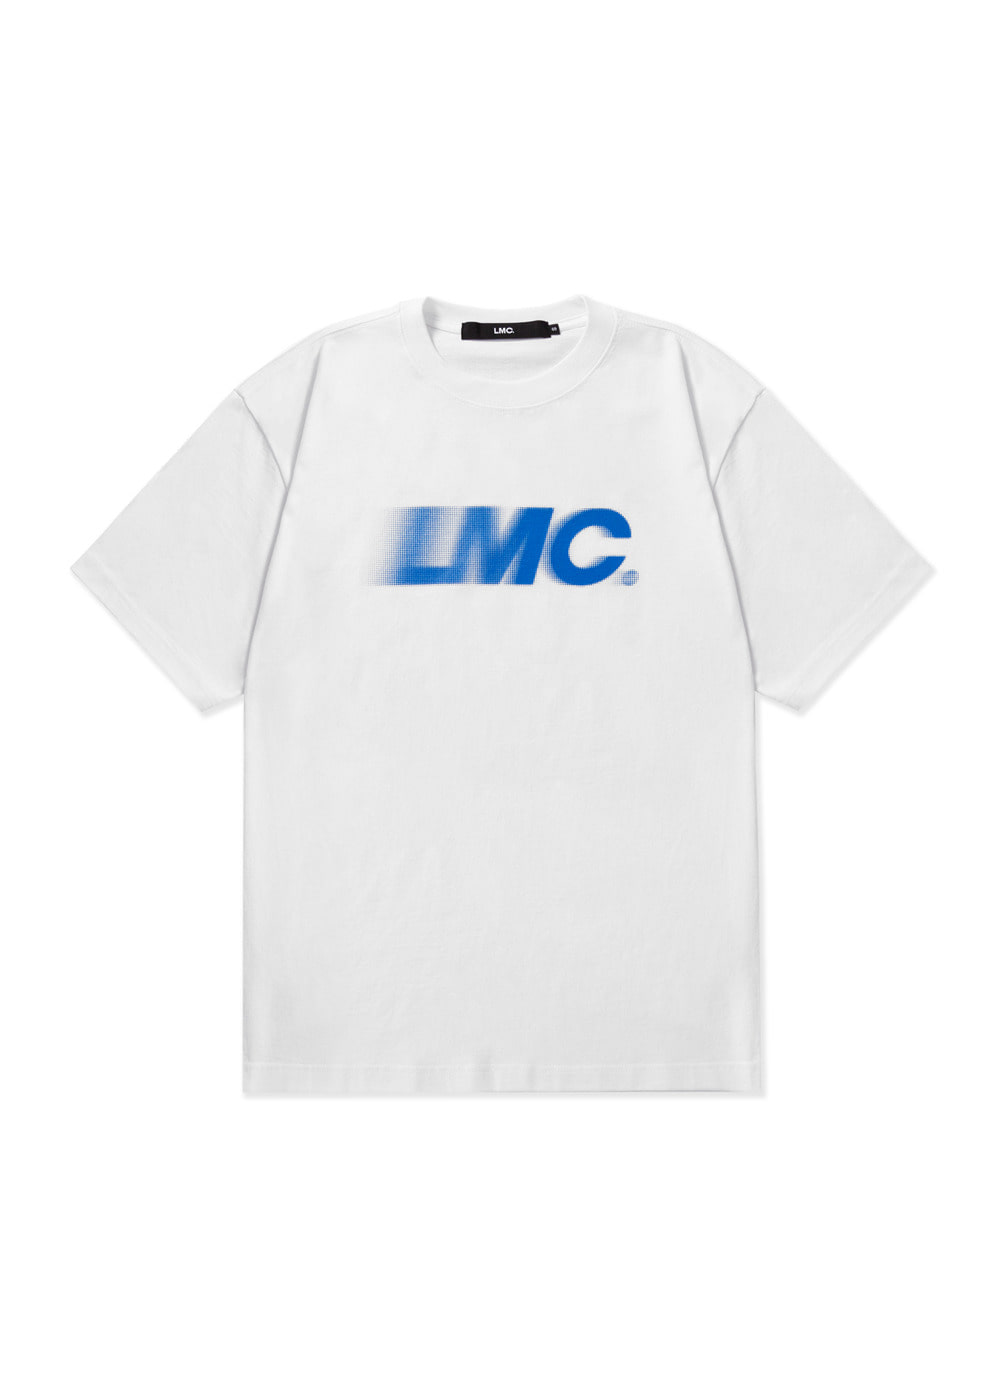 LMC 5th ANNIV RETRO MOVING OG TEE white